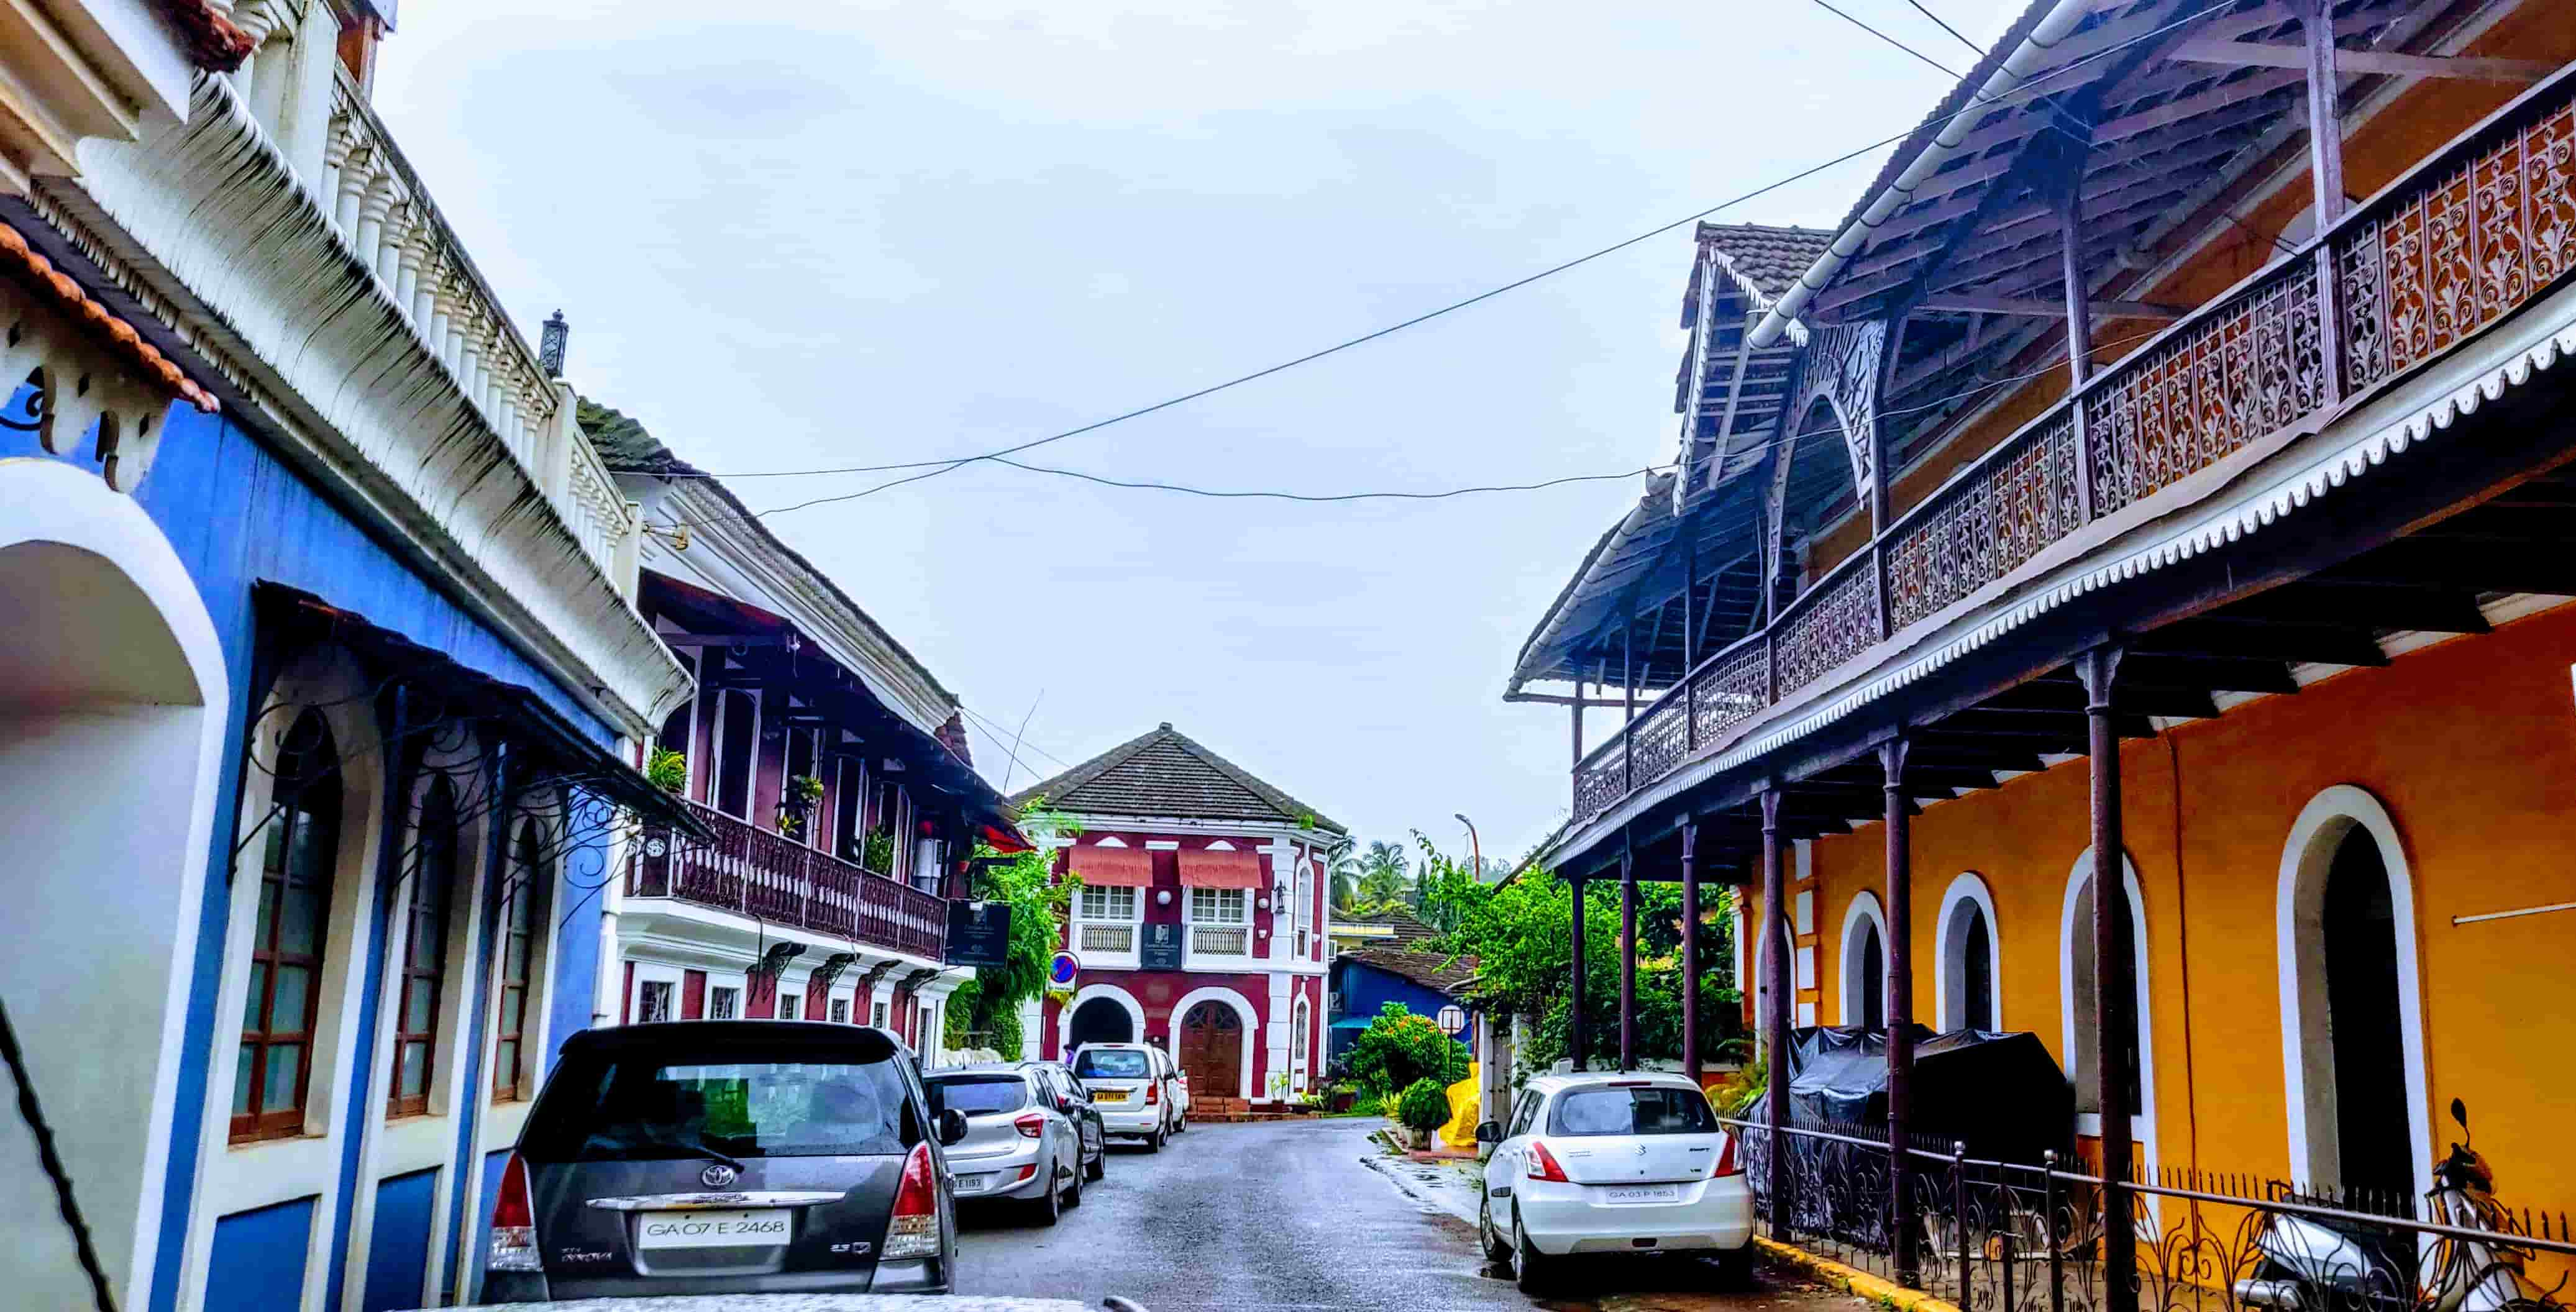 Things To Do In Goa in 2 Days Trip-Fontainhas in Panjim